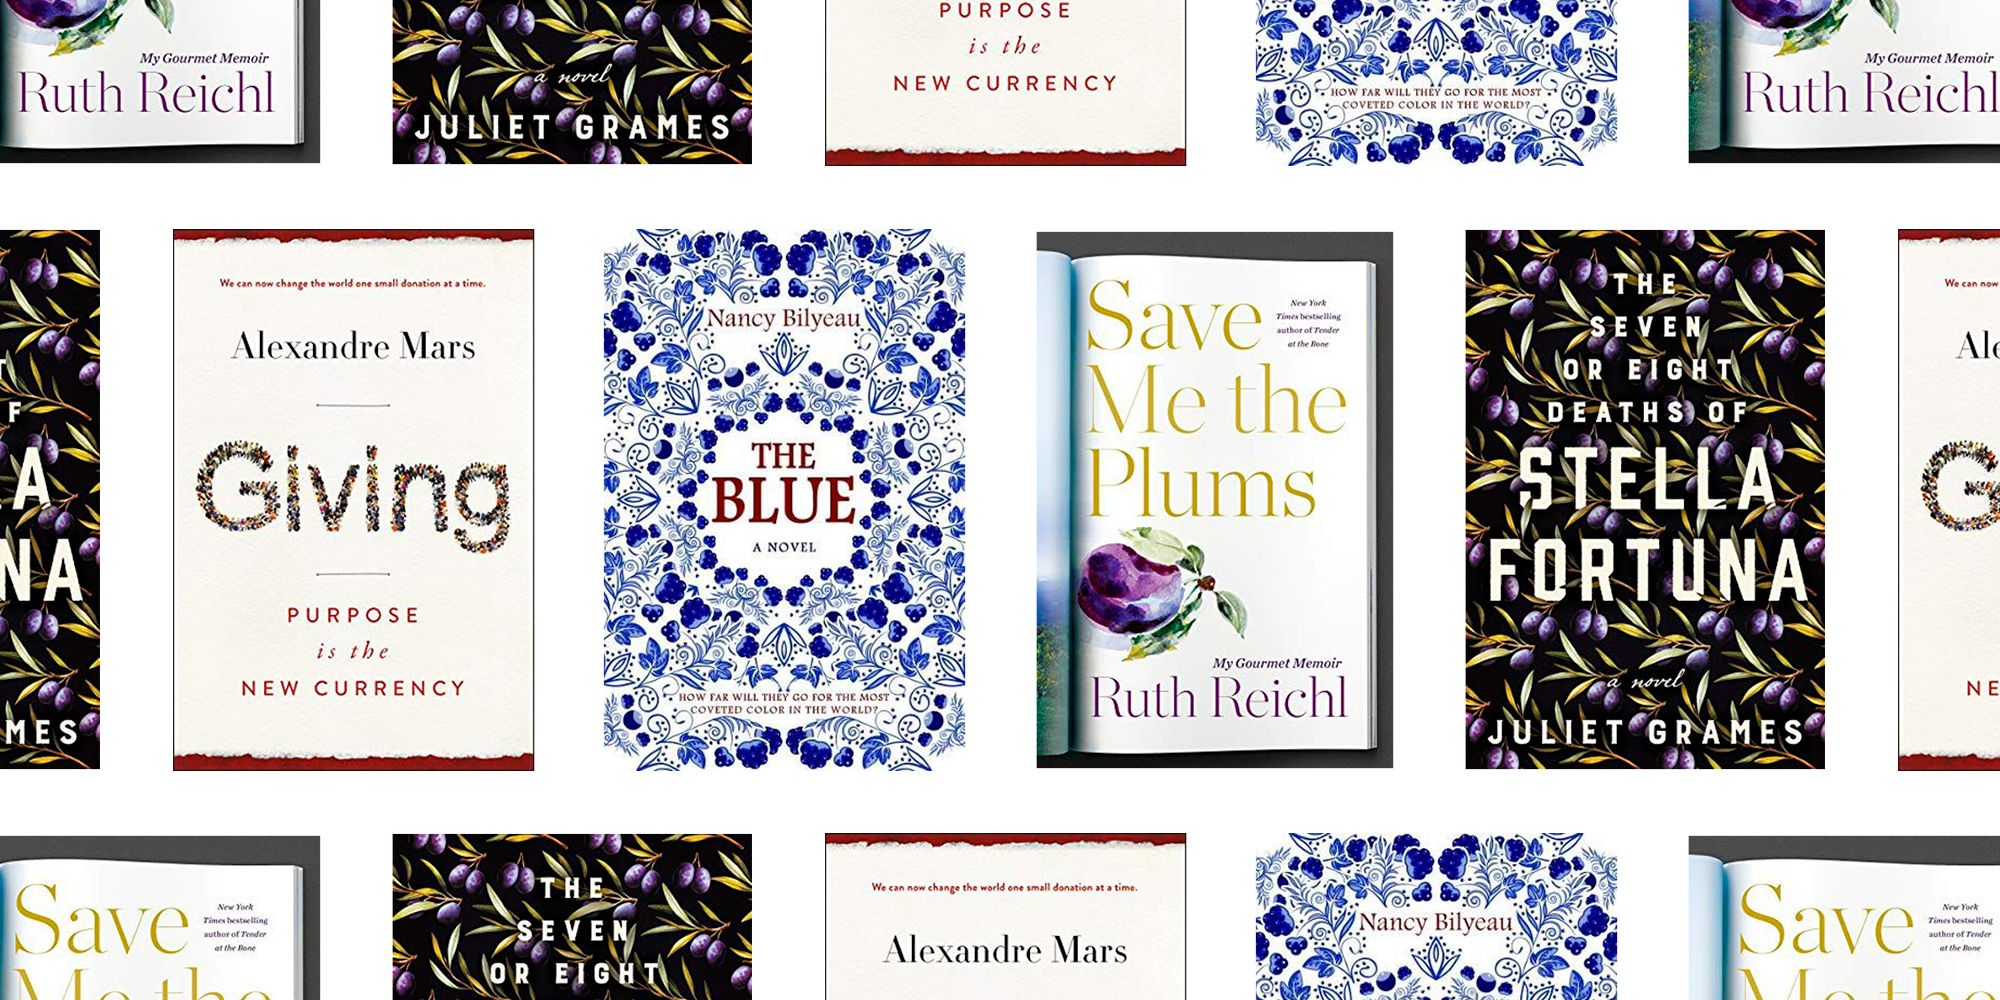 The Best Books to Read in 2019